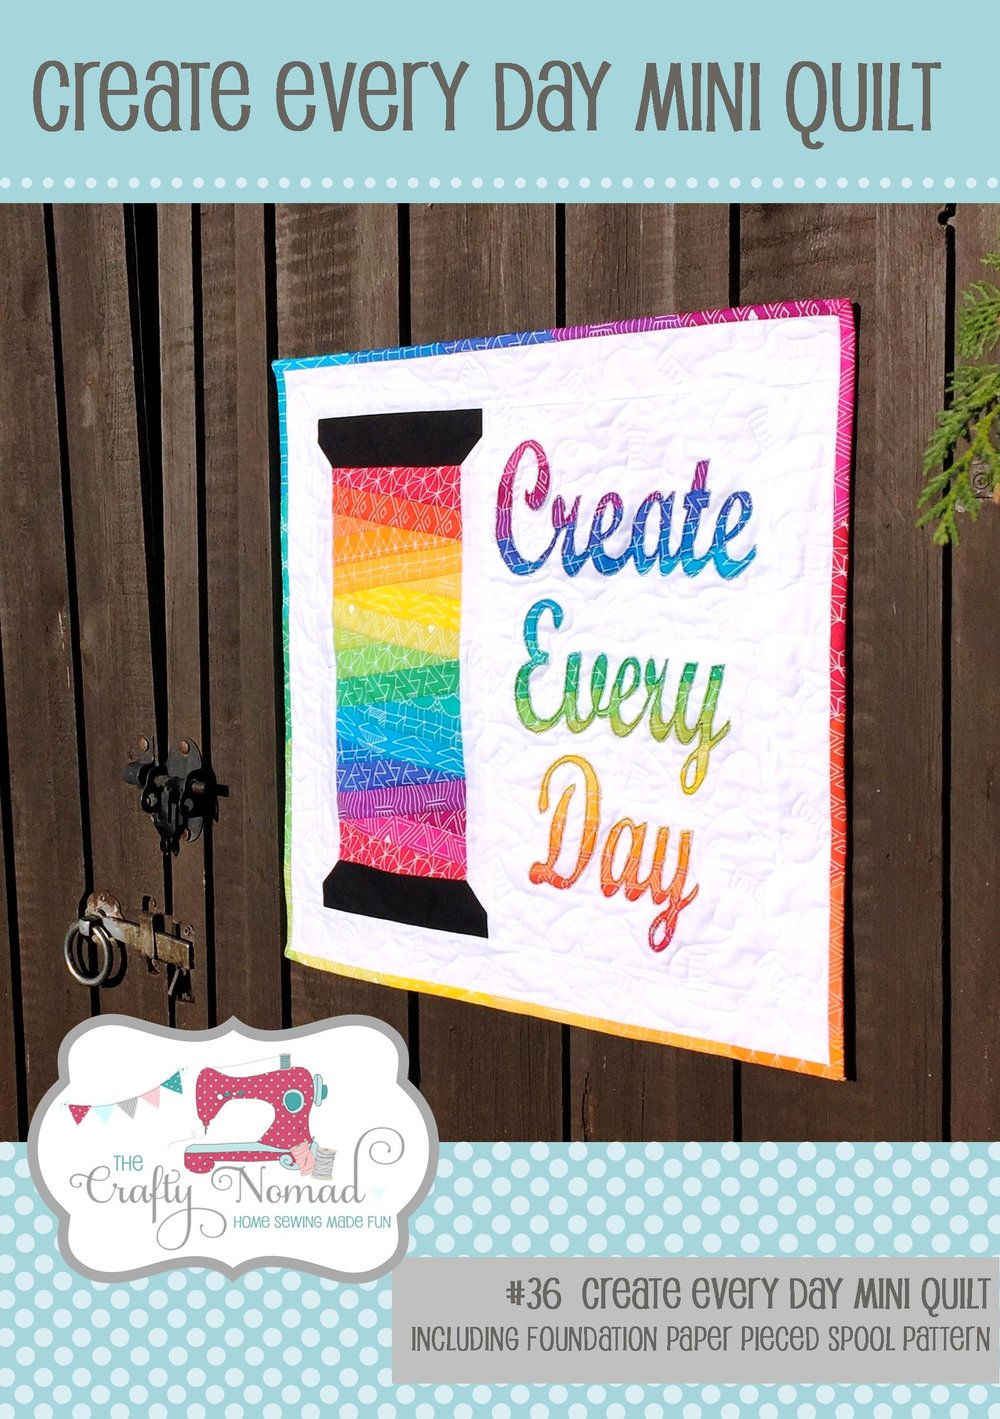 Create Every Day Mini Quilt - Everyone needs to be reminded to make time to be creative, right? It's so good for our wellbeing to be creative every day. So having this mini quilt on your wall can serve as a daily reminder! This mini quilt consists of a Foundation Paper Pieced Pattern (the spool), regular piecing and raw edge appliqué (the letters). The mini quilt finishes up at 22 inches square. There are also measurements for making it 20 inch square, so that you can make it into a cushion instead.